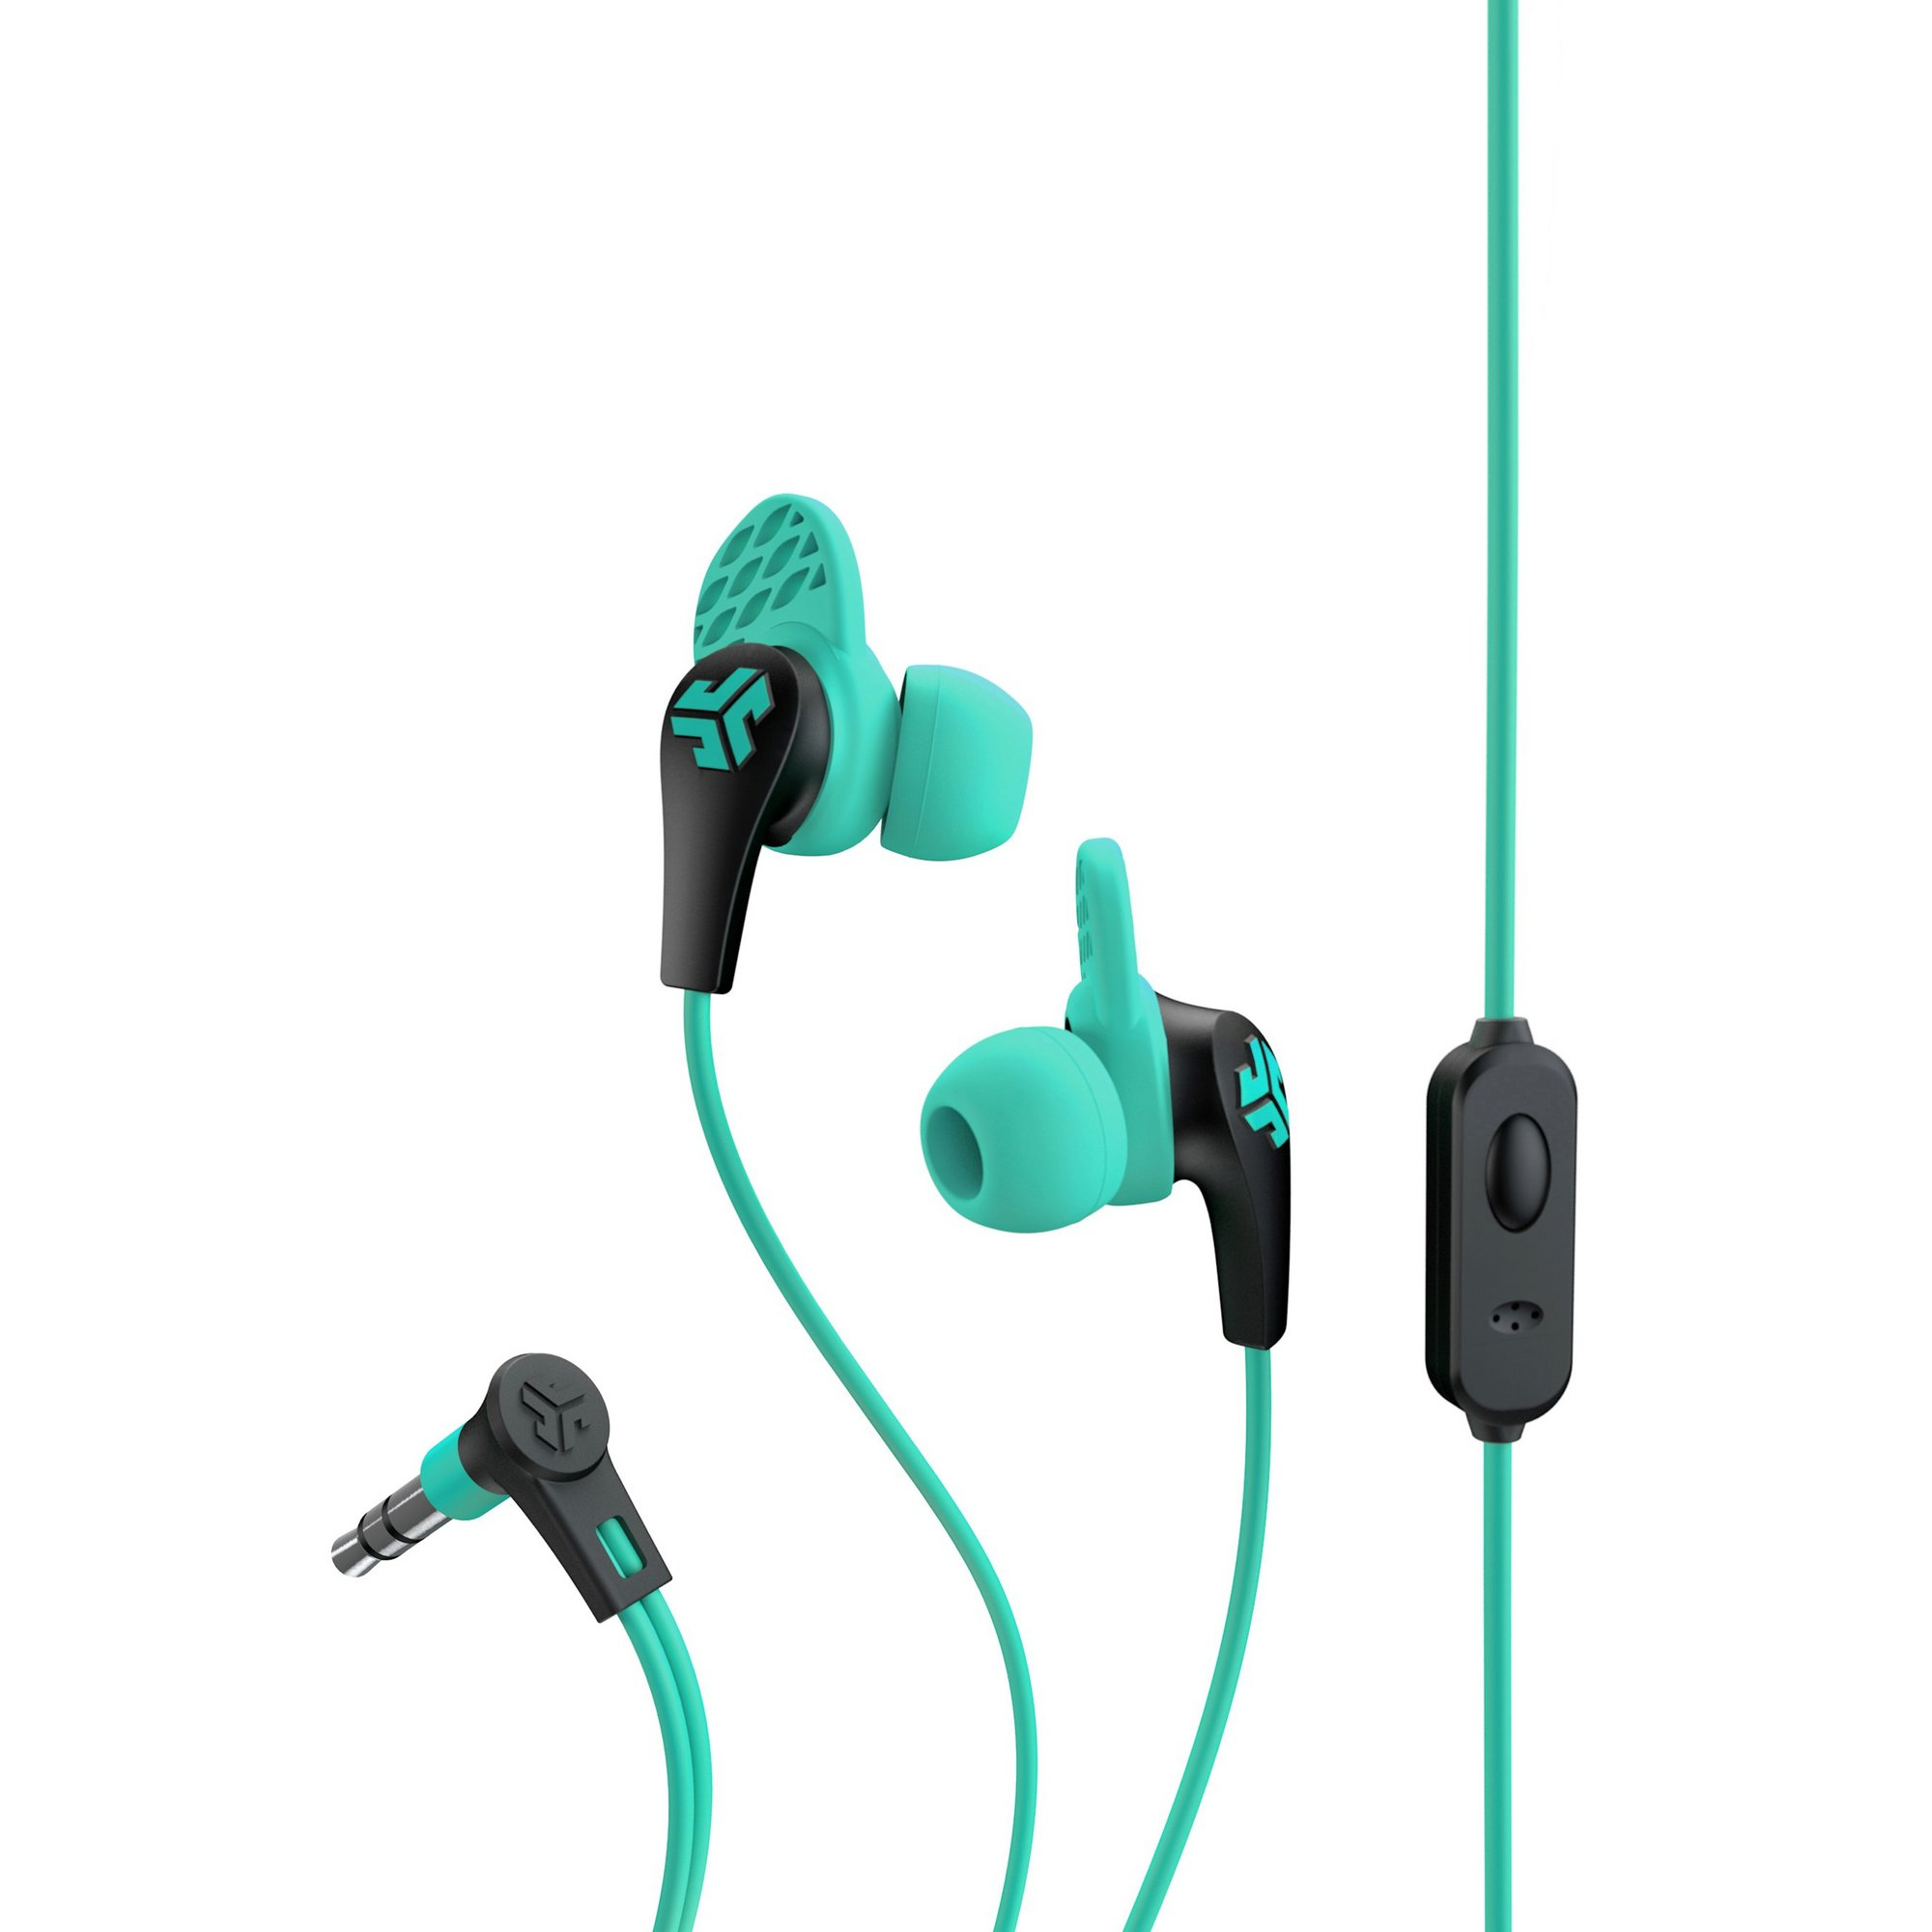 Image of JLab JBuds Pro Wired Earphones